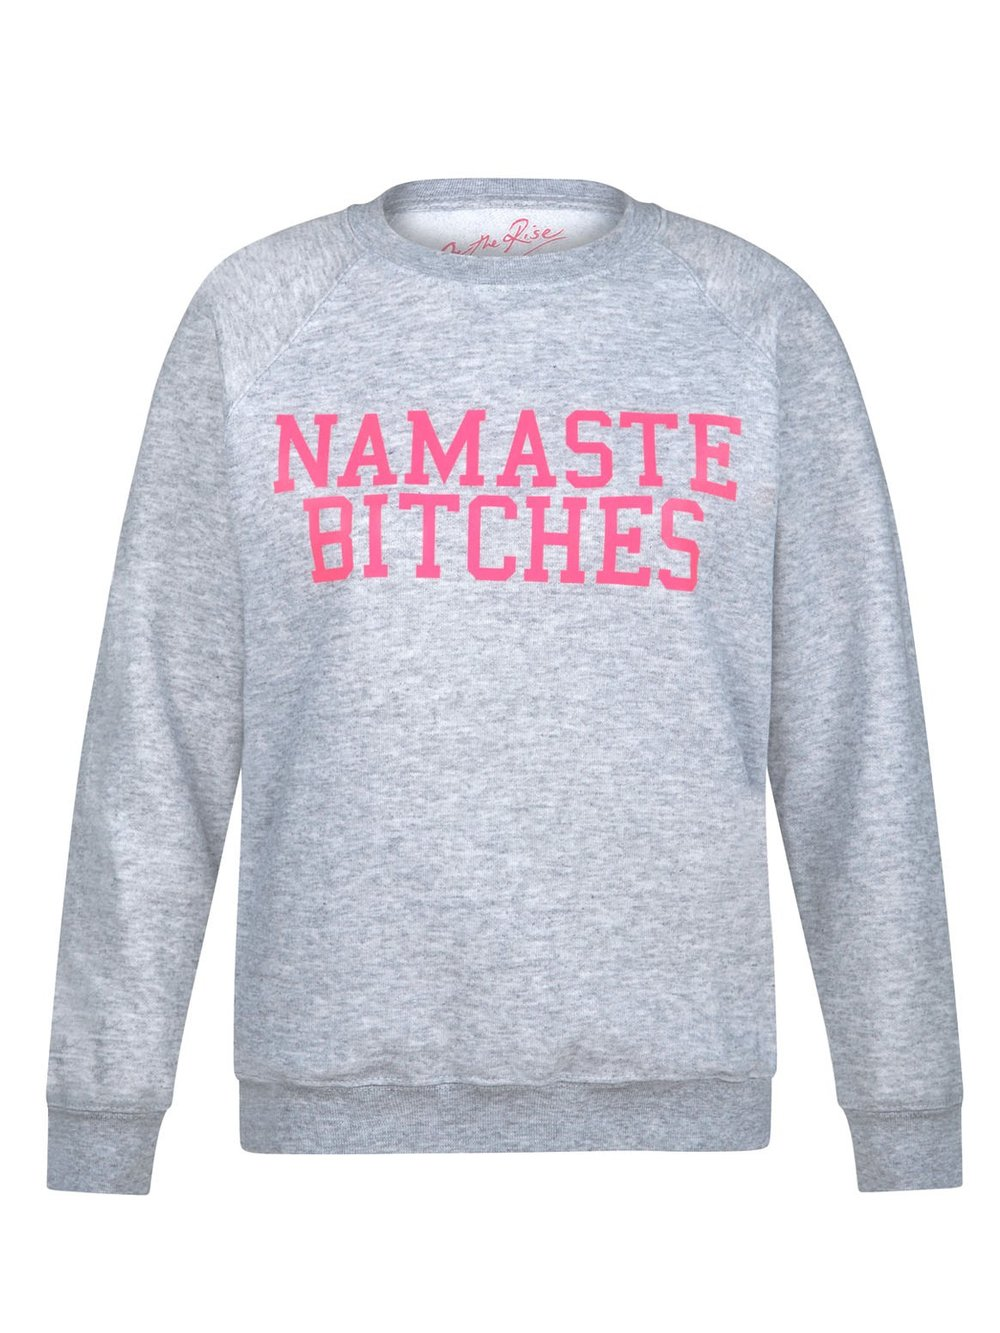 On-The-Rise-Namaste-Bitches-Sweatshirt-.jpg